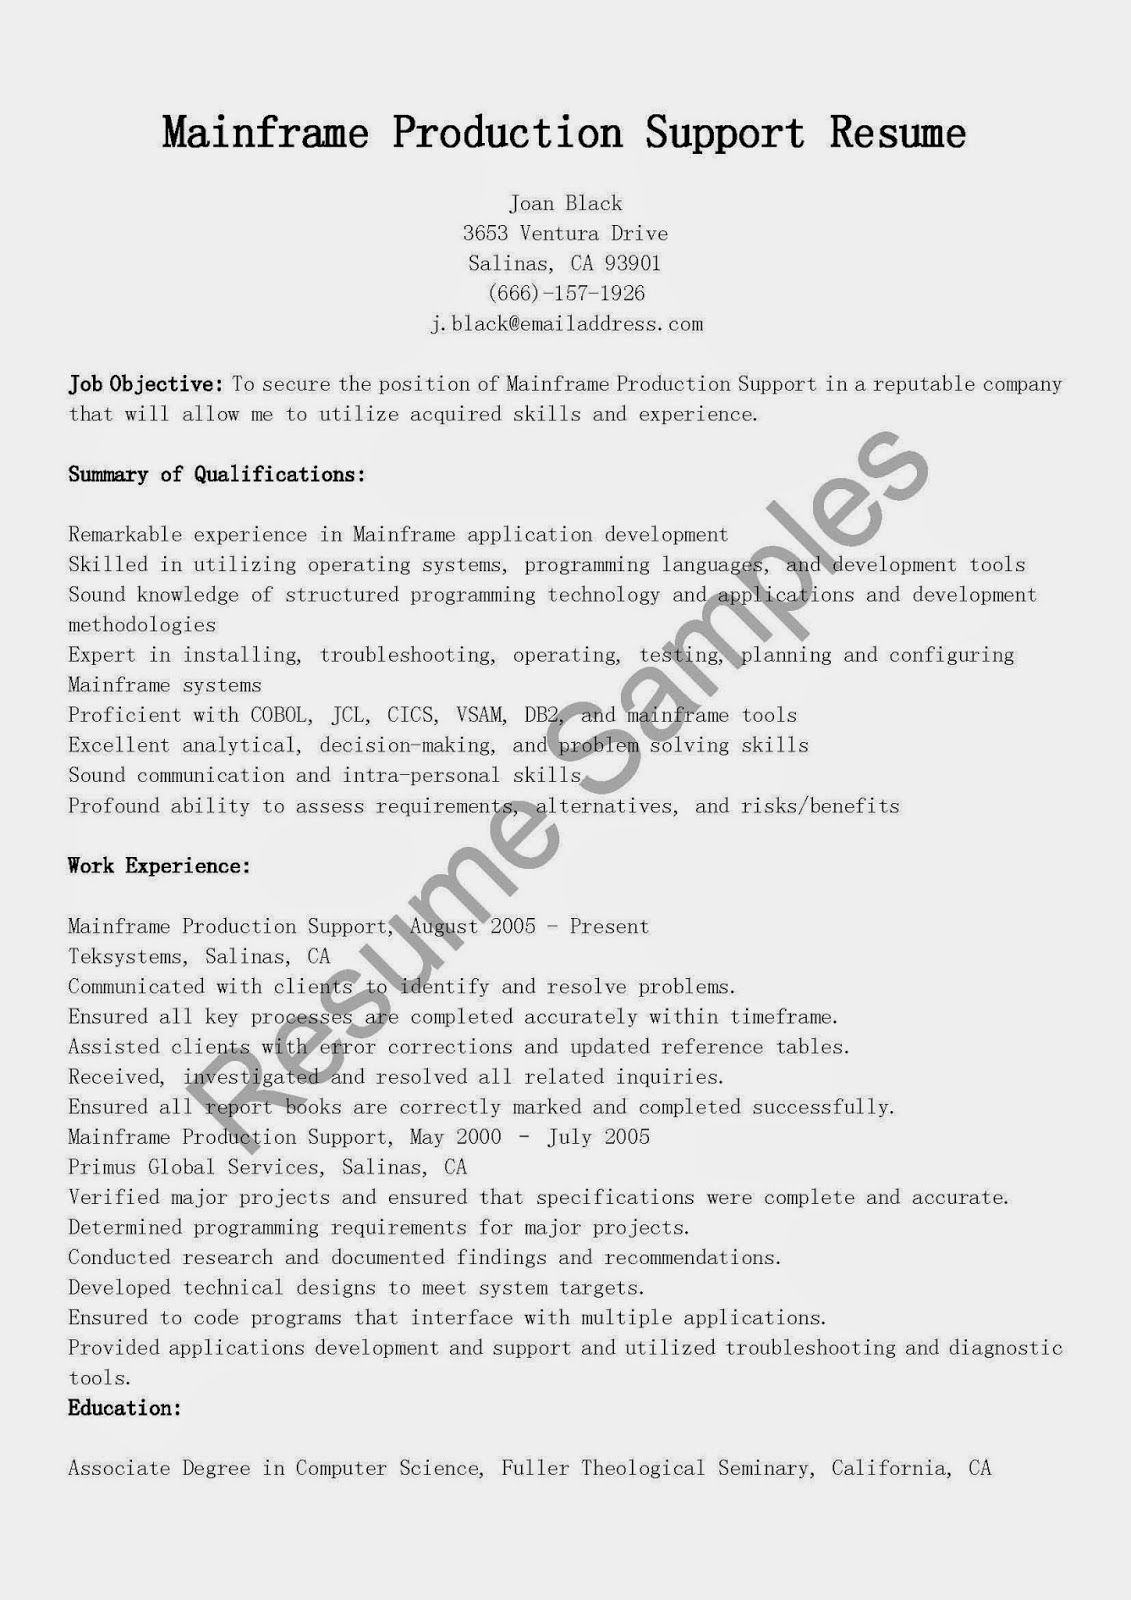 Skills For Job Resume Mainframe Production Support Resume Sample  Resume Samples